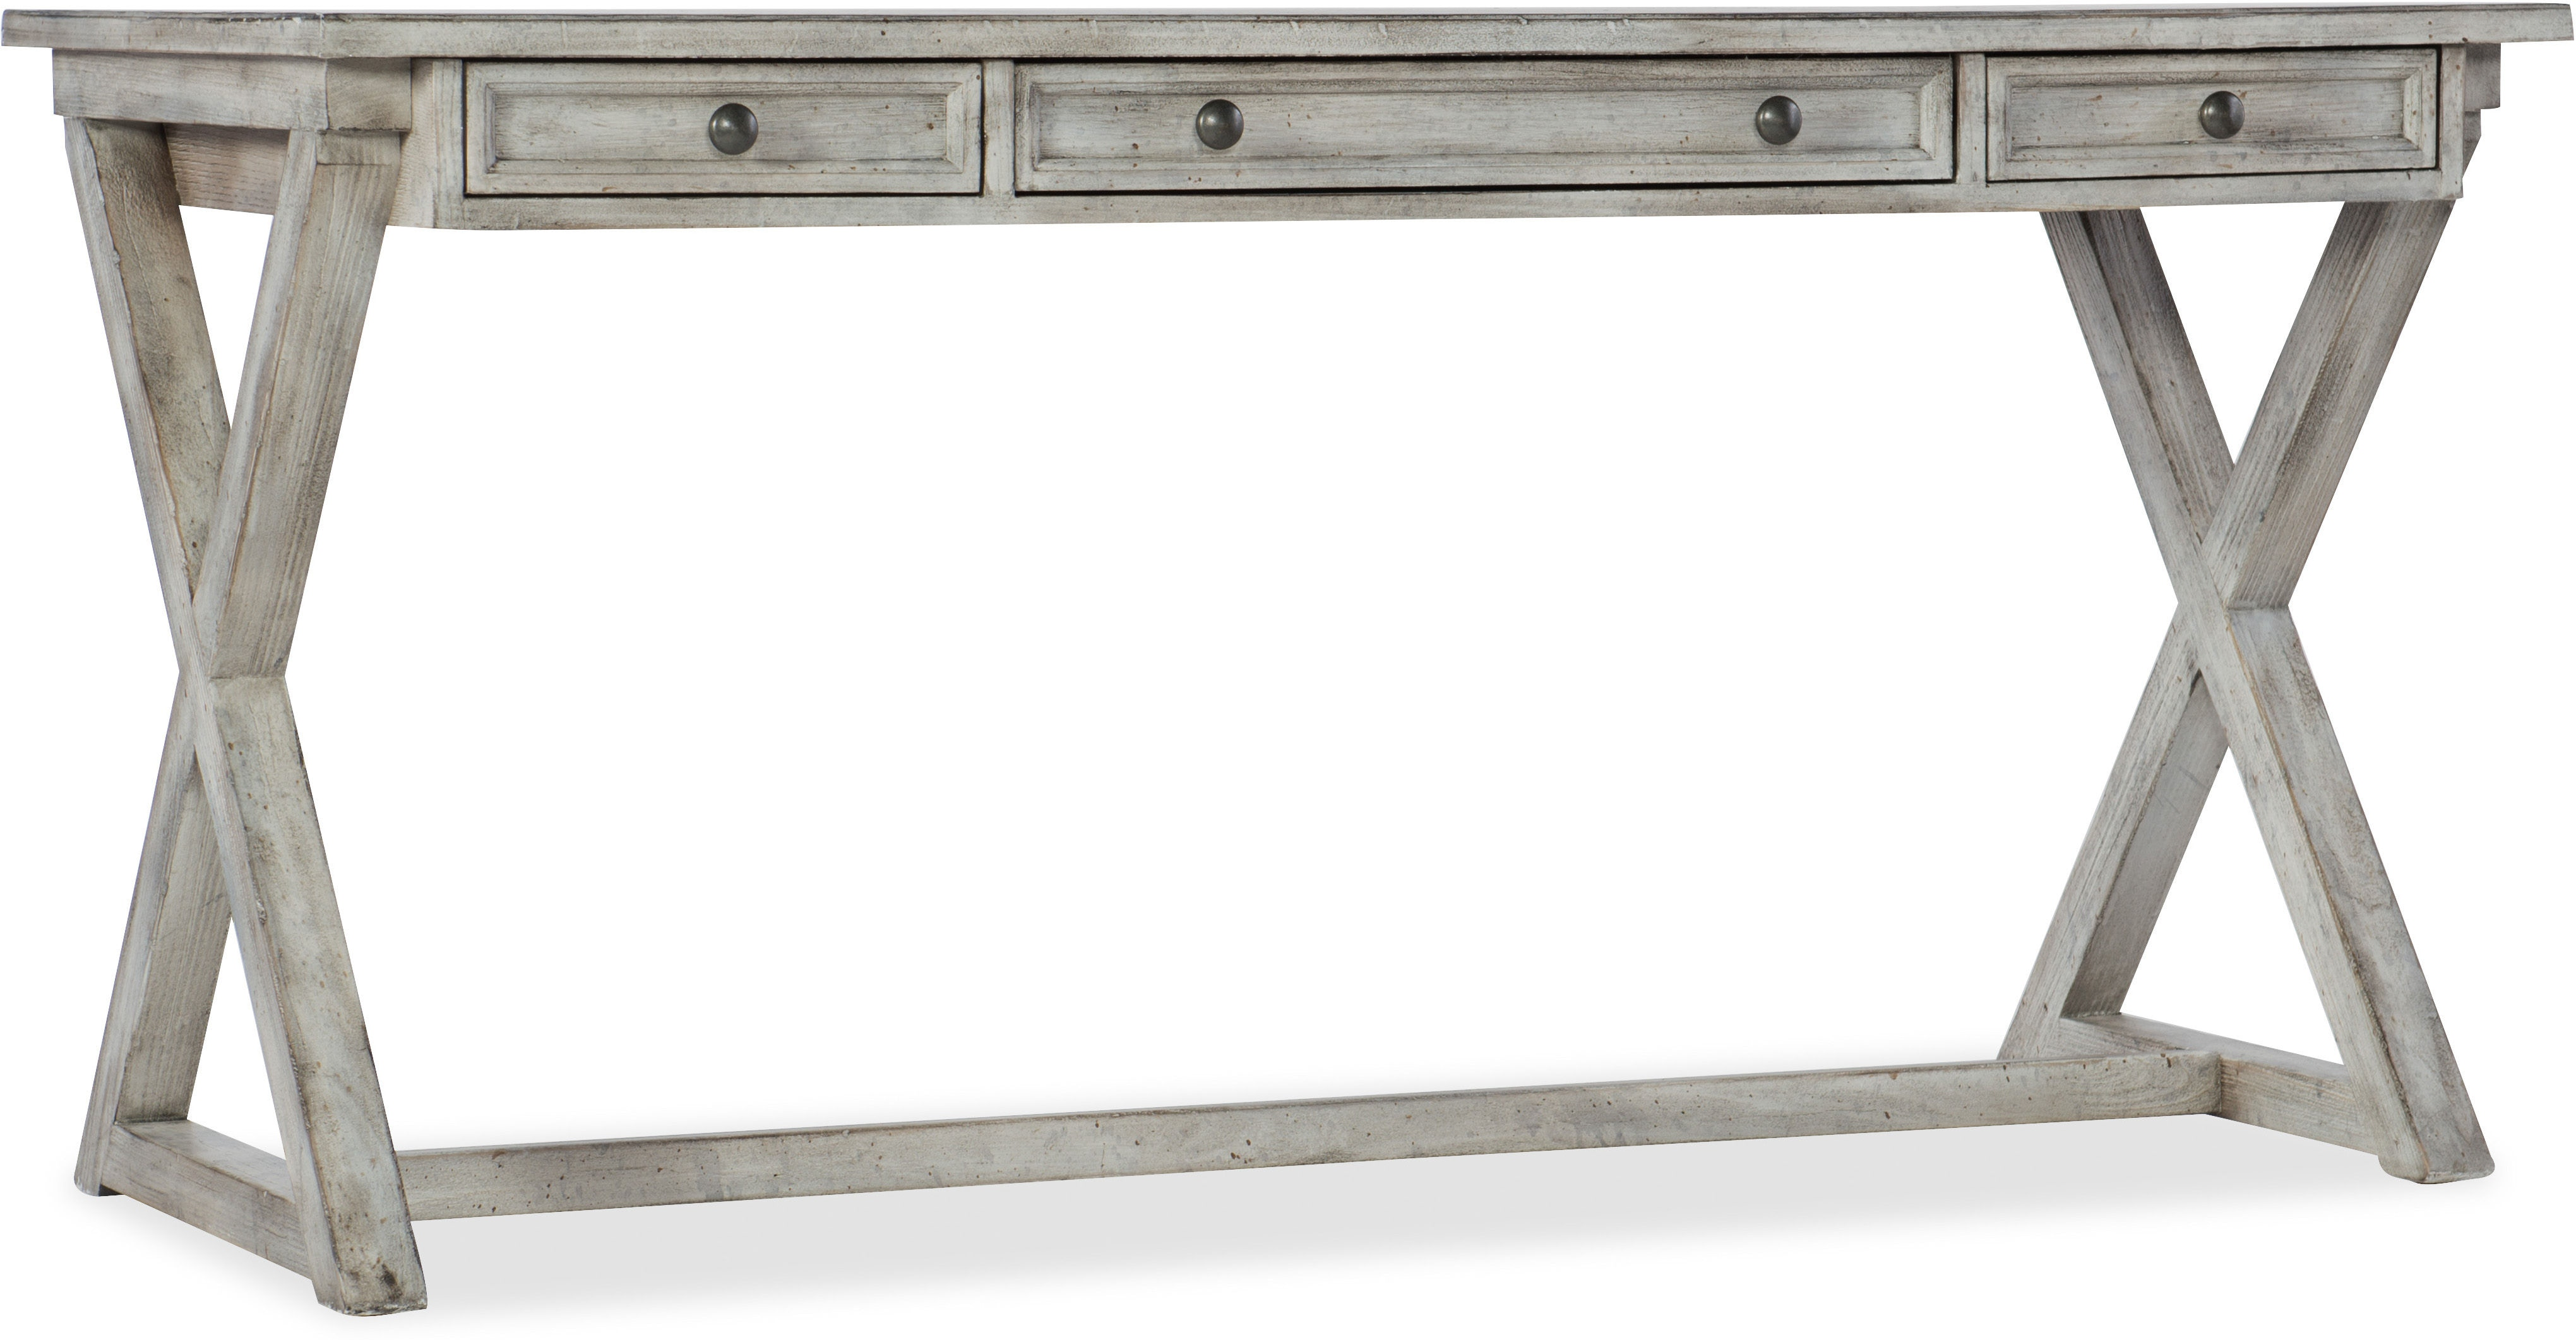 Melange Dixon Writing Desk santa barbara design center hooker furniture 638-10019-GRY(2